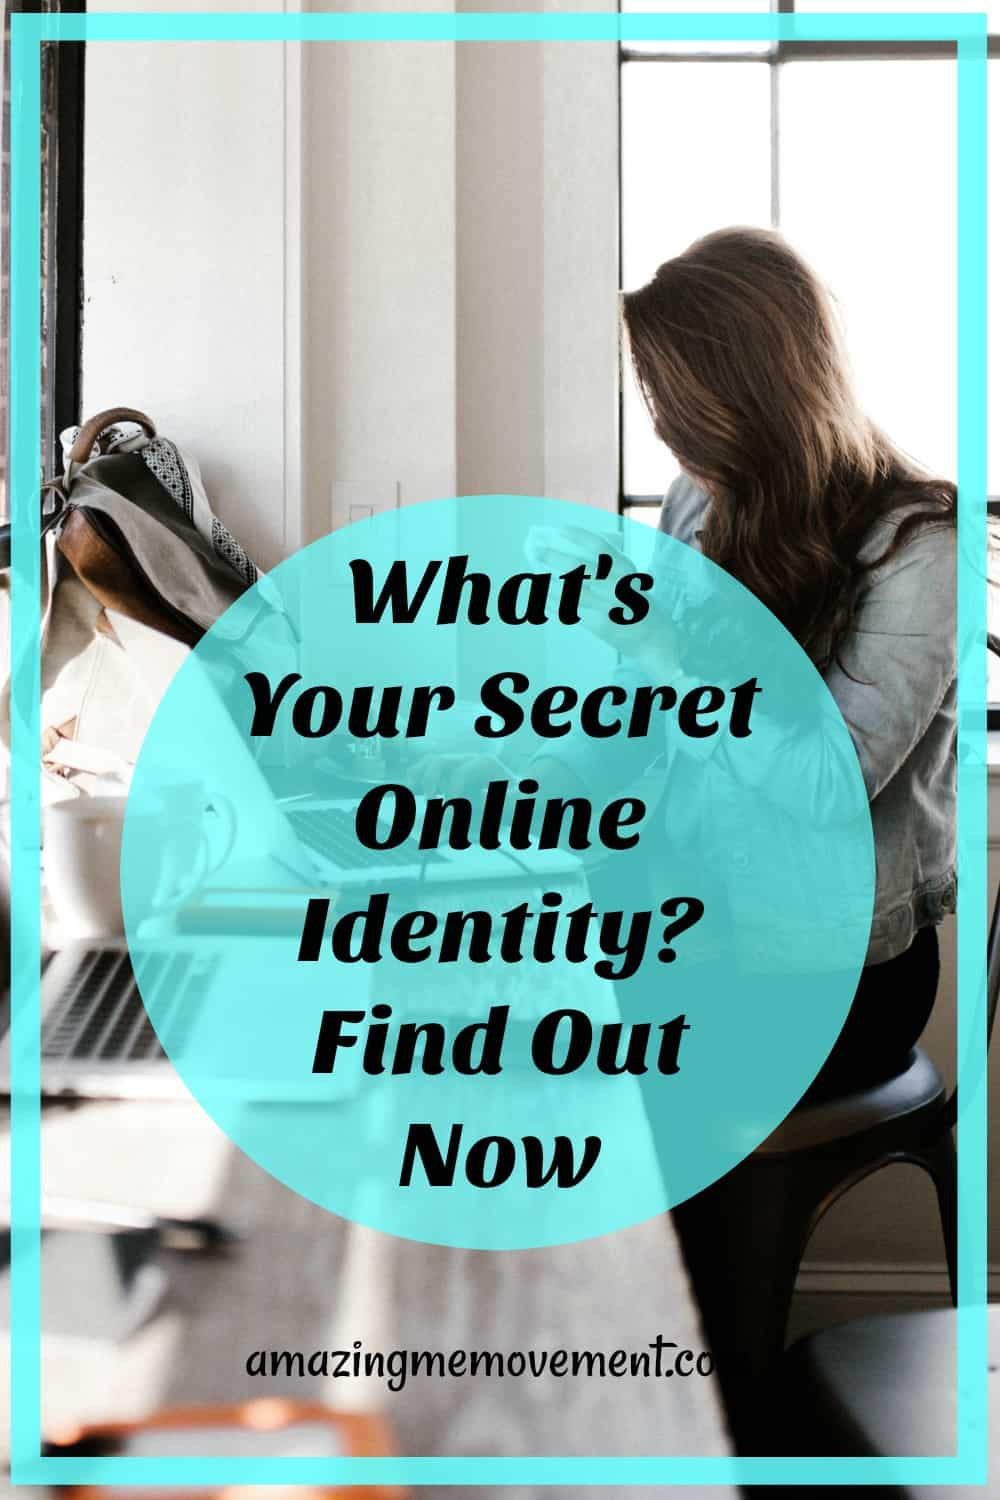 What's your secret online identity?